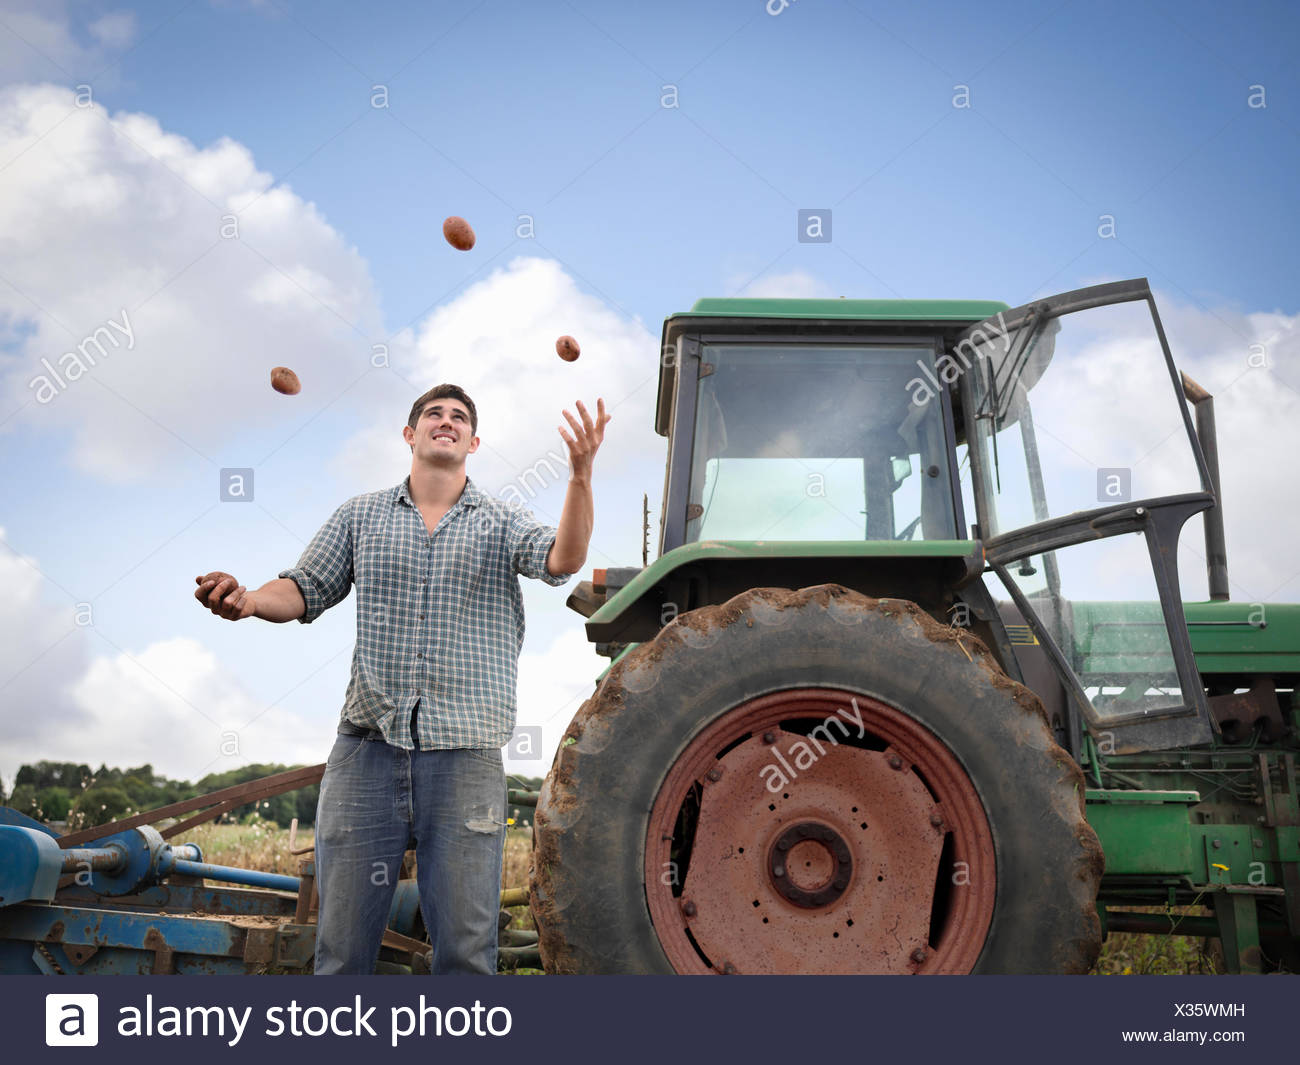 Farmer juggling with freshly harvested organic potatoes - Stock Image